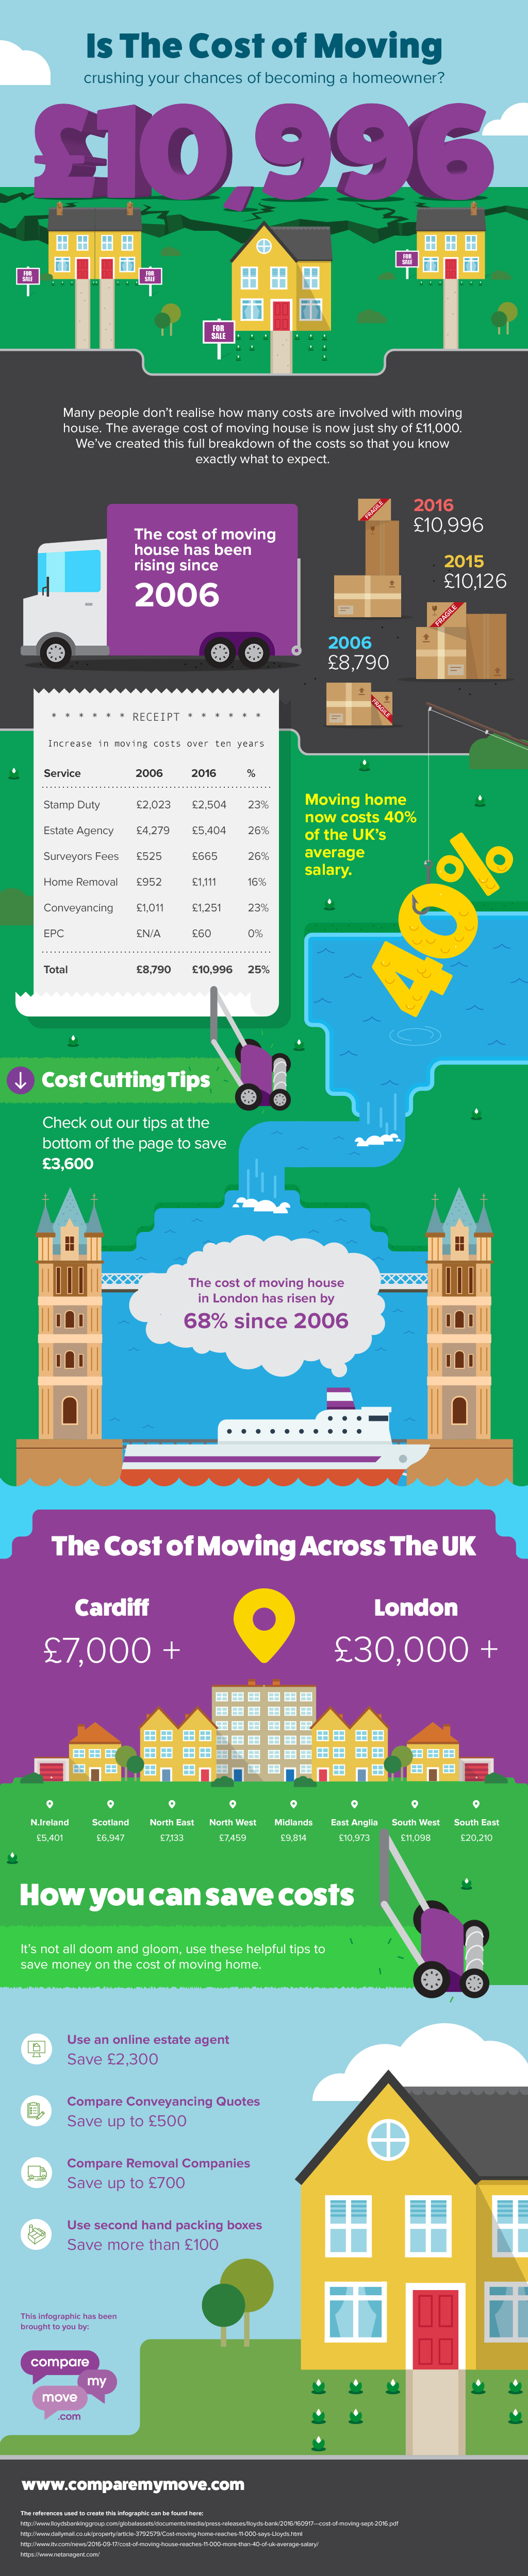 Cost Of Moving To Become A Homeowner [Infographic]